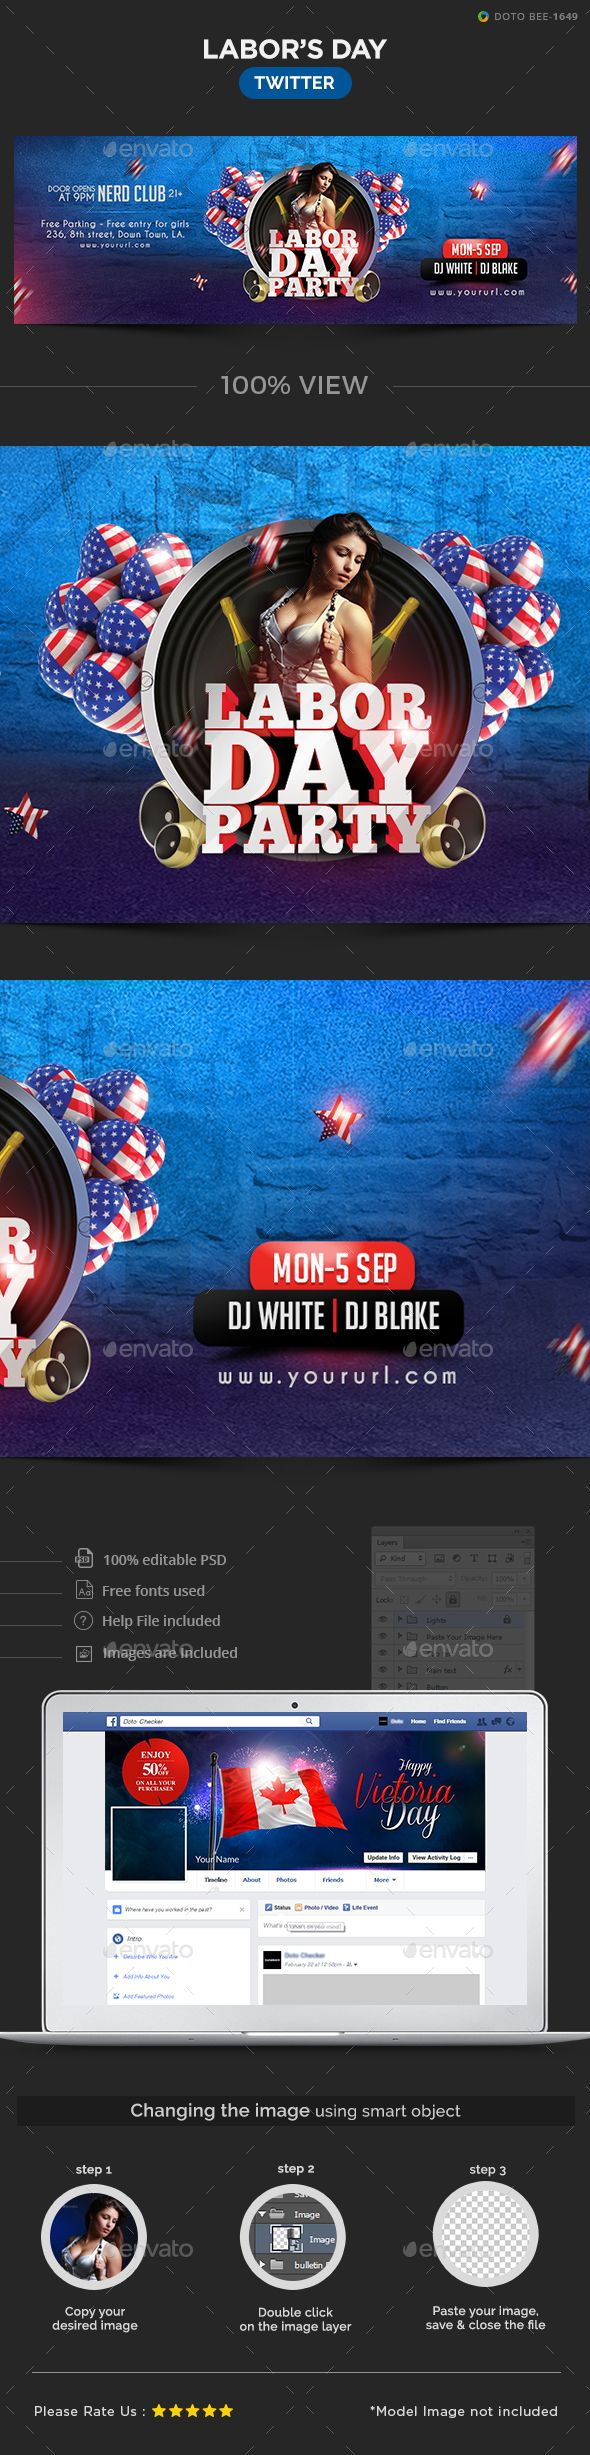 Labor Day Party Twitter Header Template Psd Download Here Https